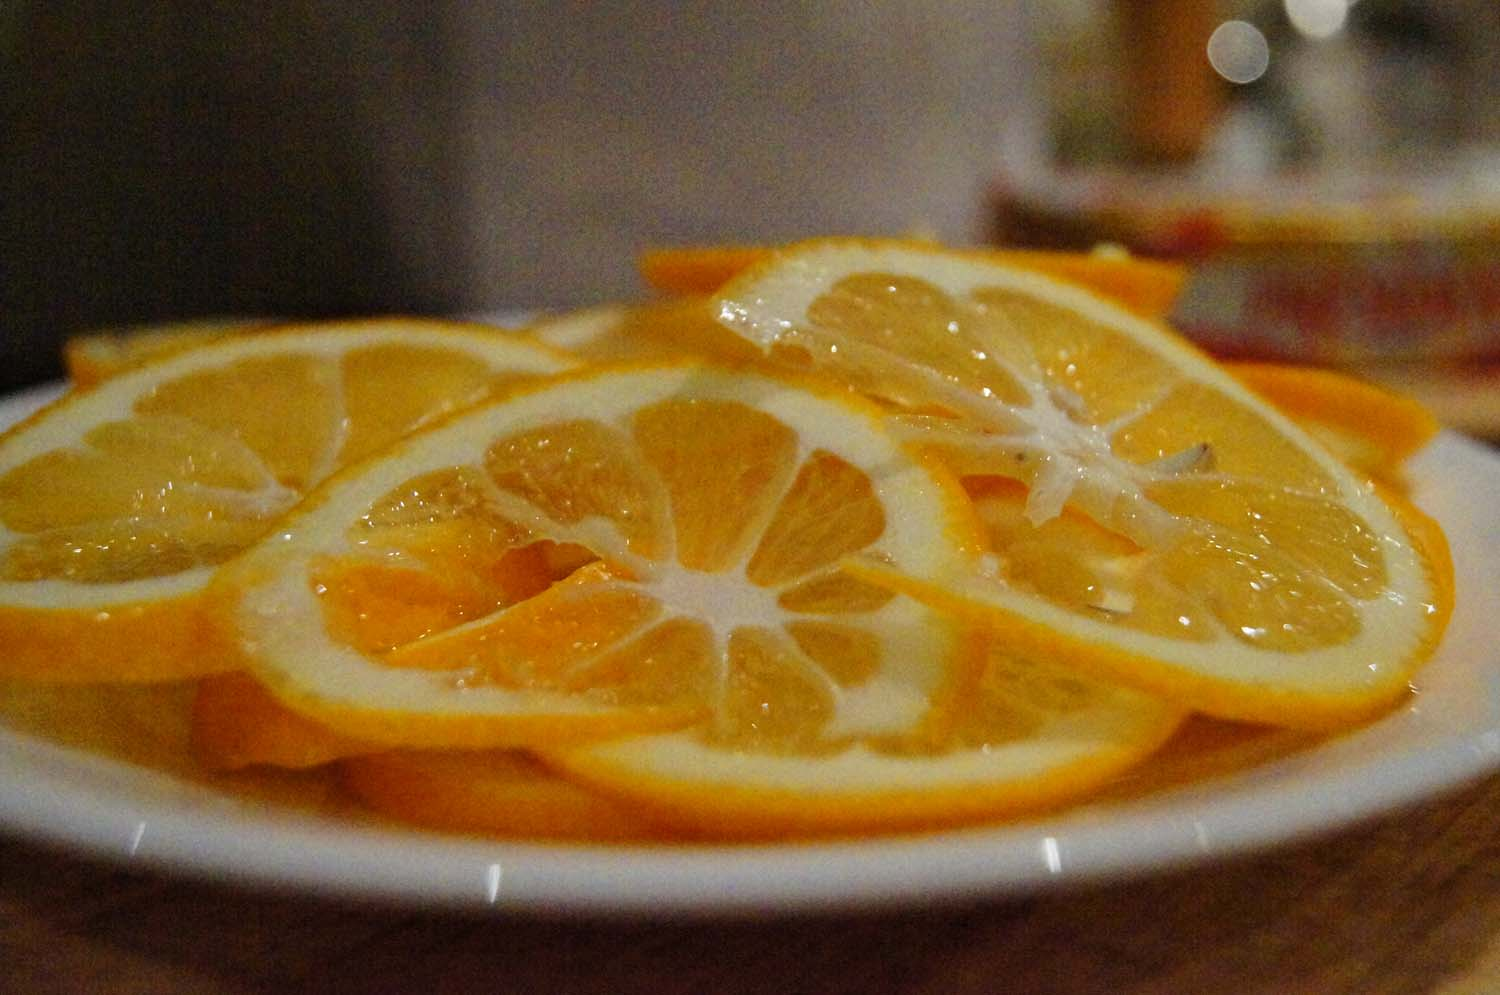 how to prepare lemon water the right way